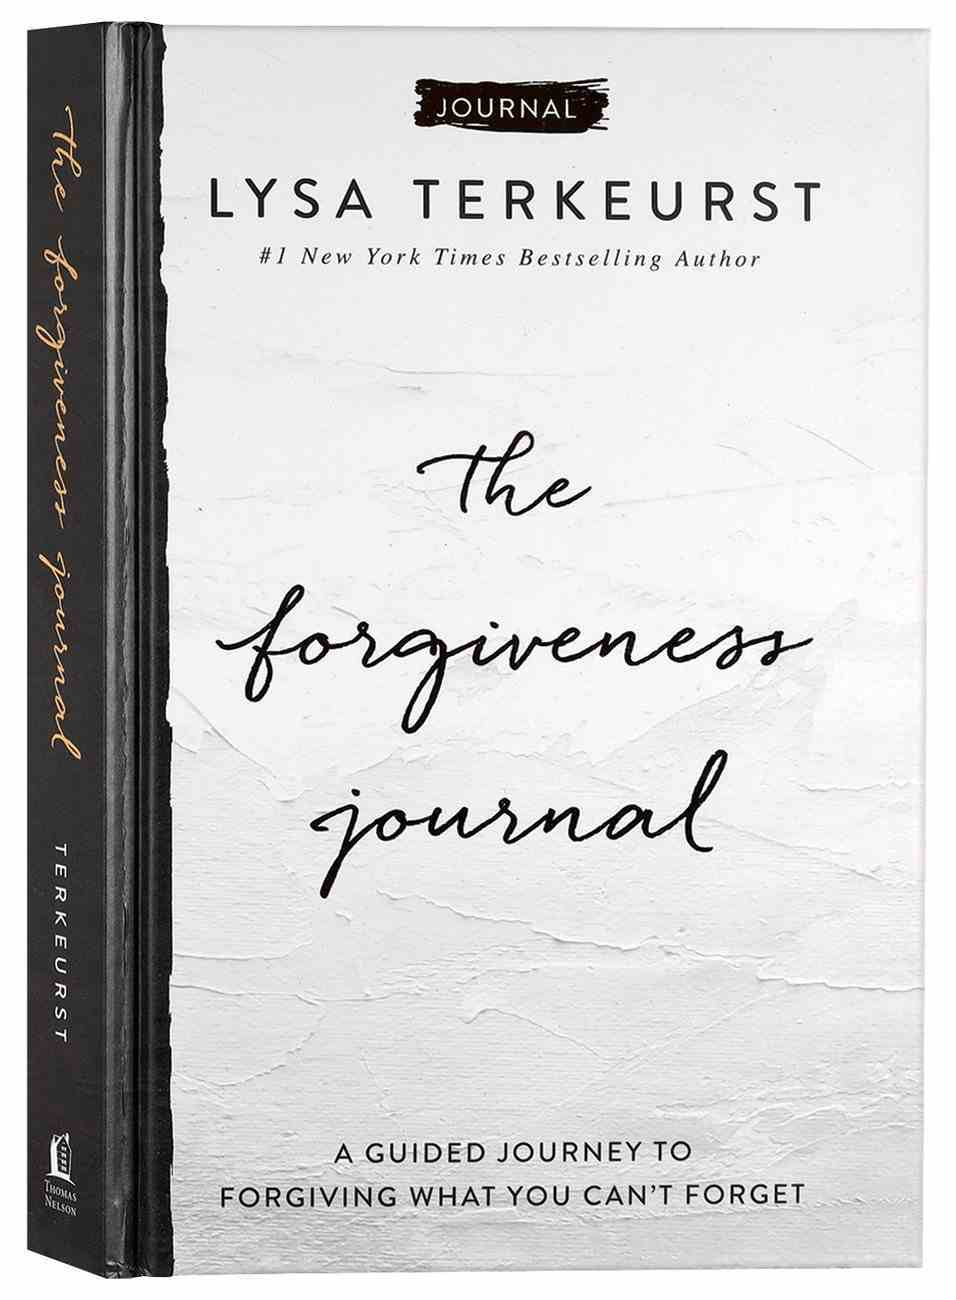 The Forgiveness Journal: A Guided Journey to Forgiving What You Can't Forget Hardback